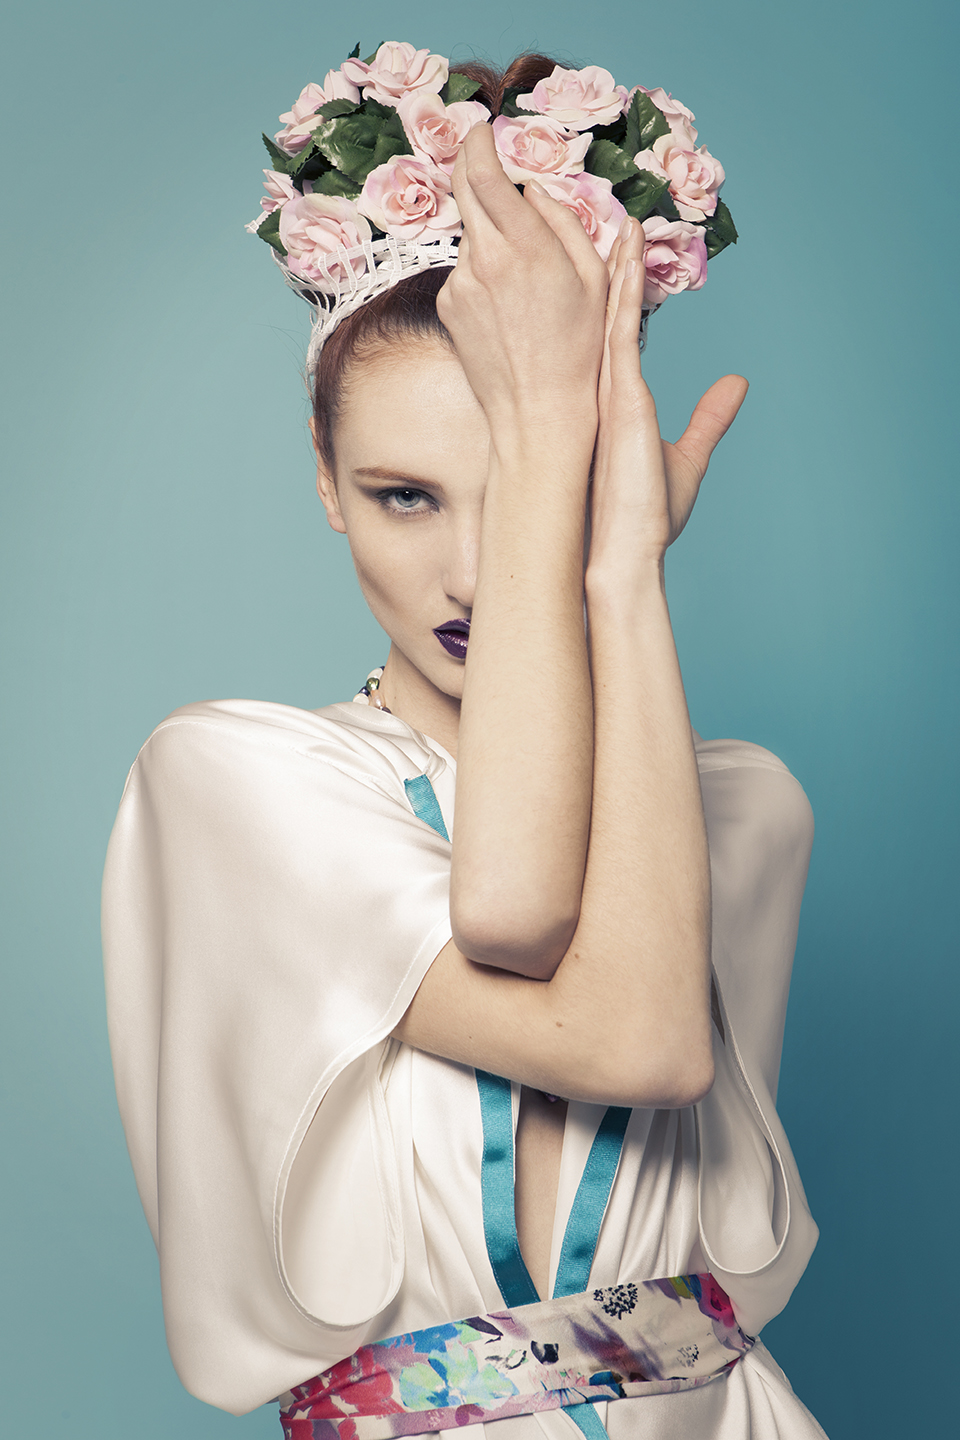 Flower Power - fashion editorial for Stilo Magazine - Galli / Trevisan photographers